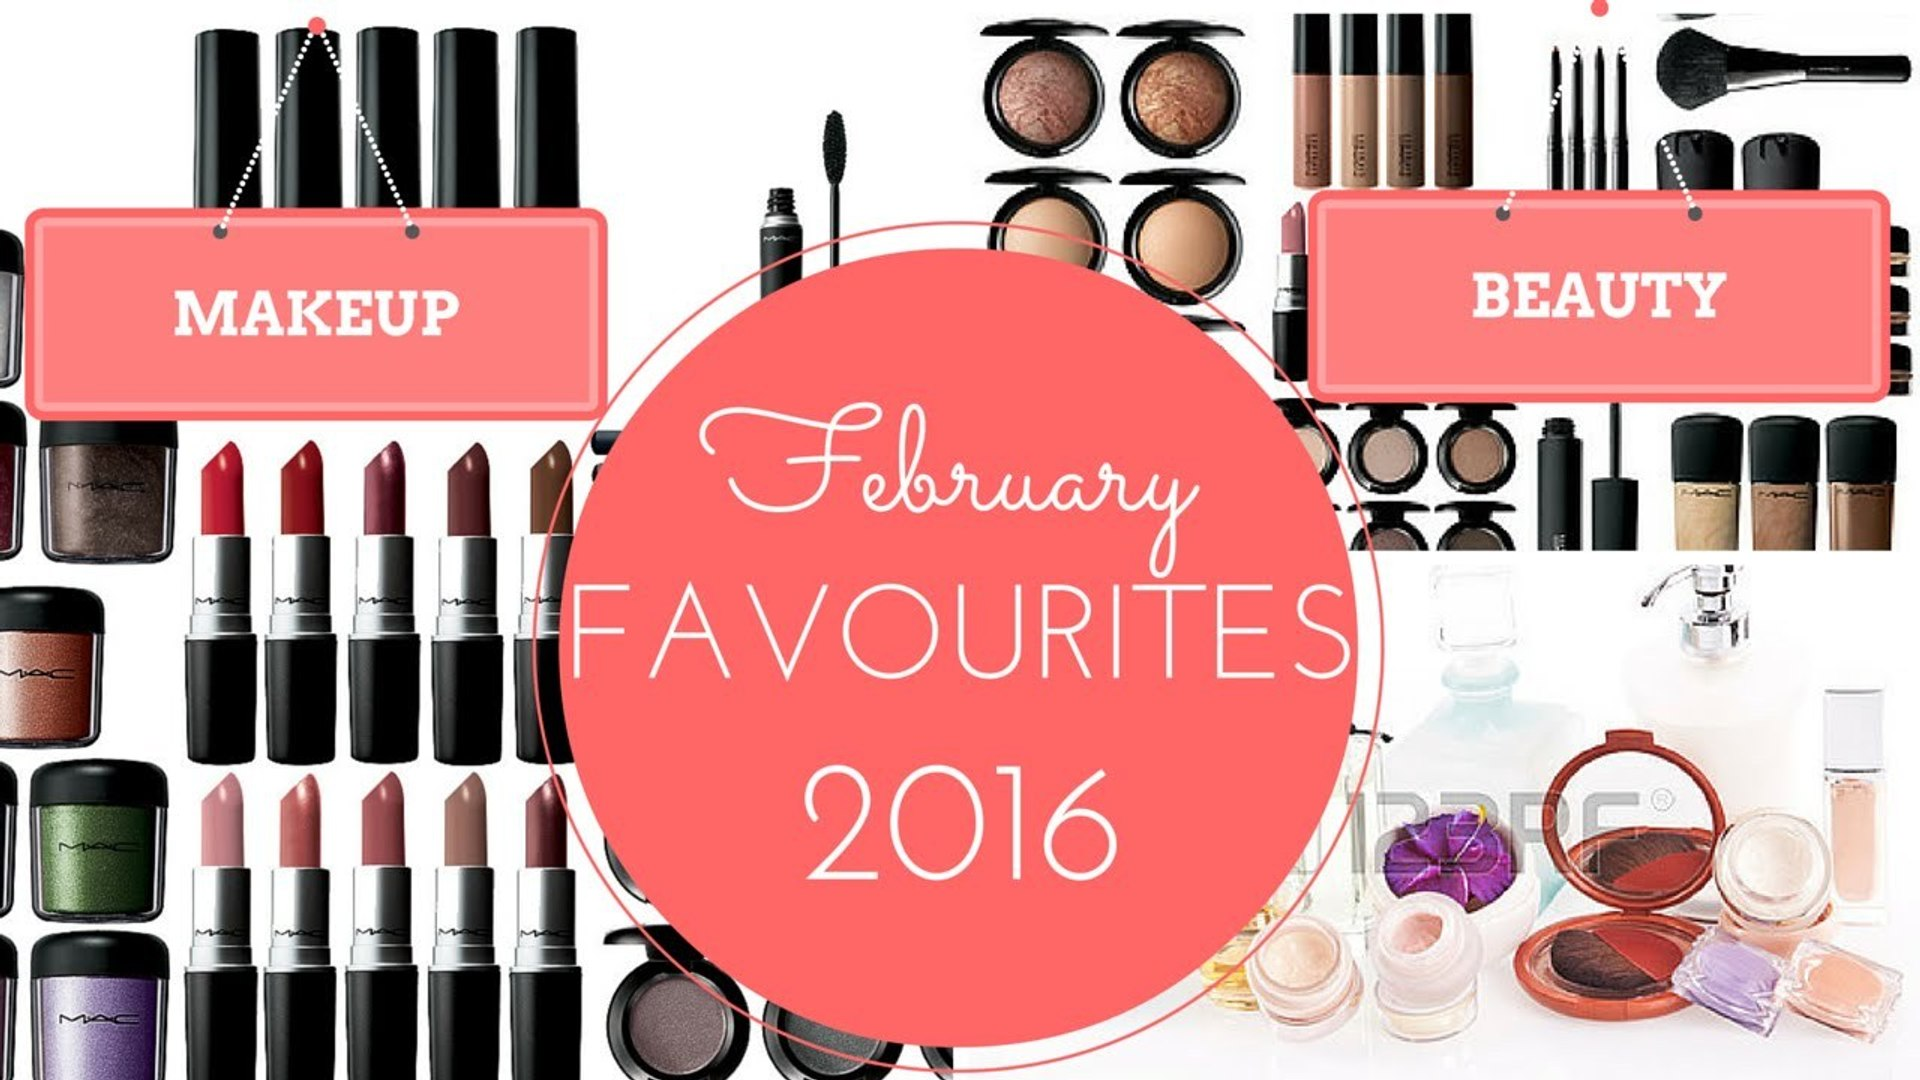 February Favourites 2016 -  Makeup and Beauty